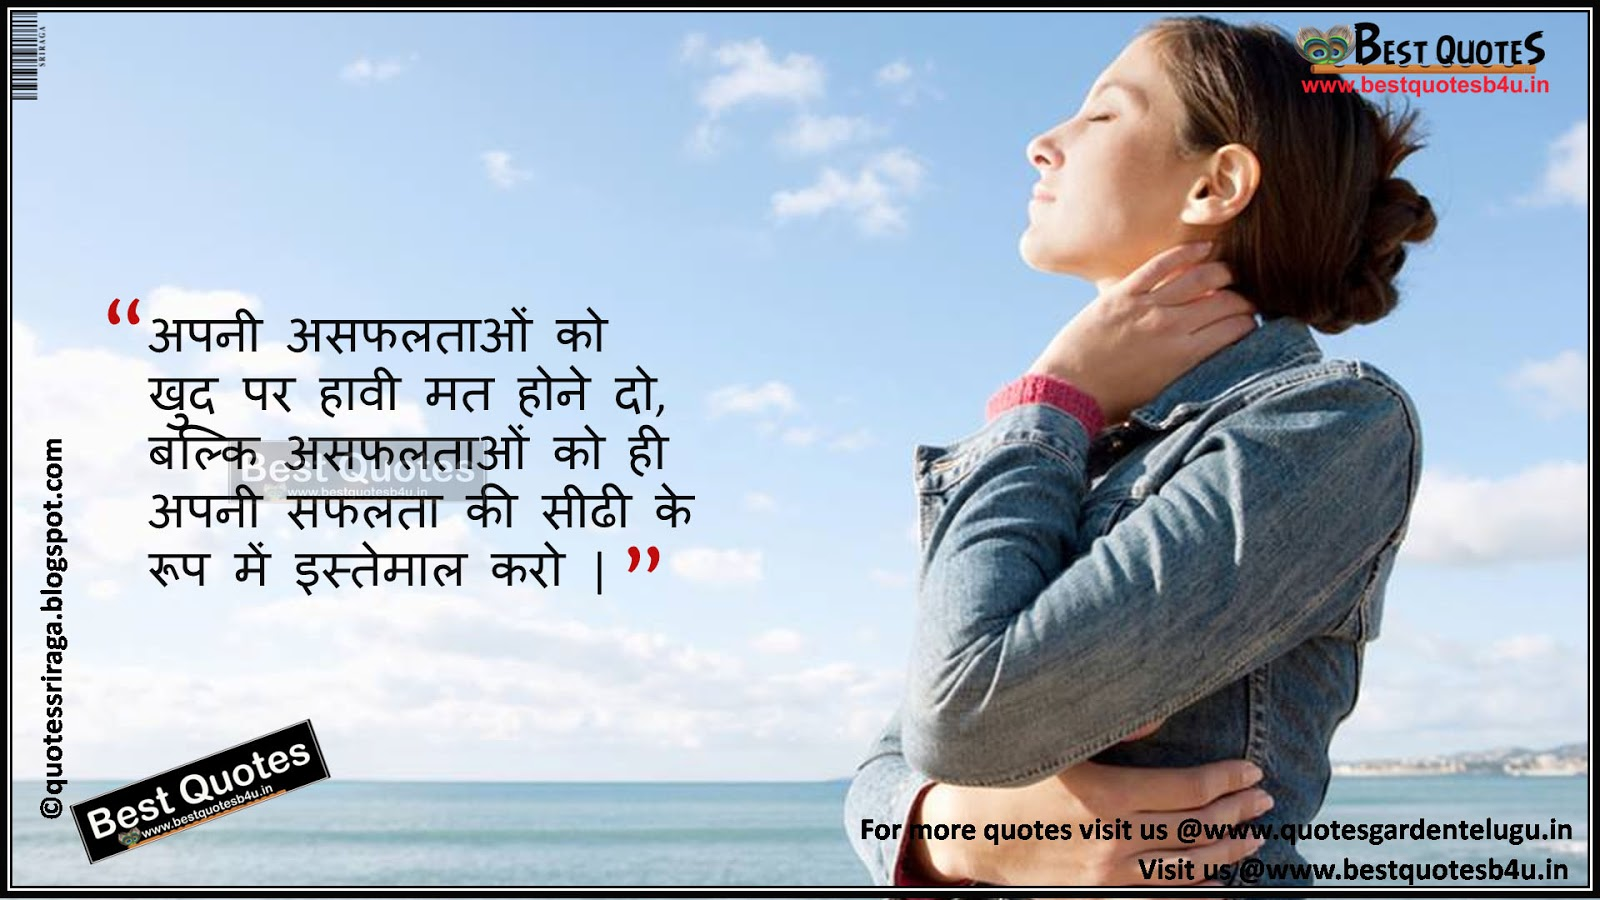 ... Nice Hindi Inspirational Life Quotes Sms Like Share Follow Life Sms  Collection At Quoteslife Quotes Sms